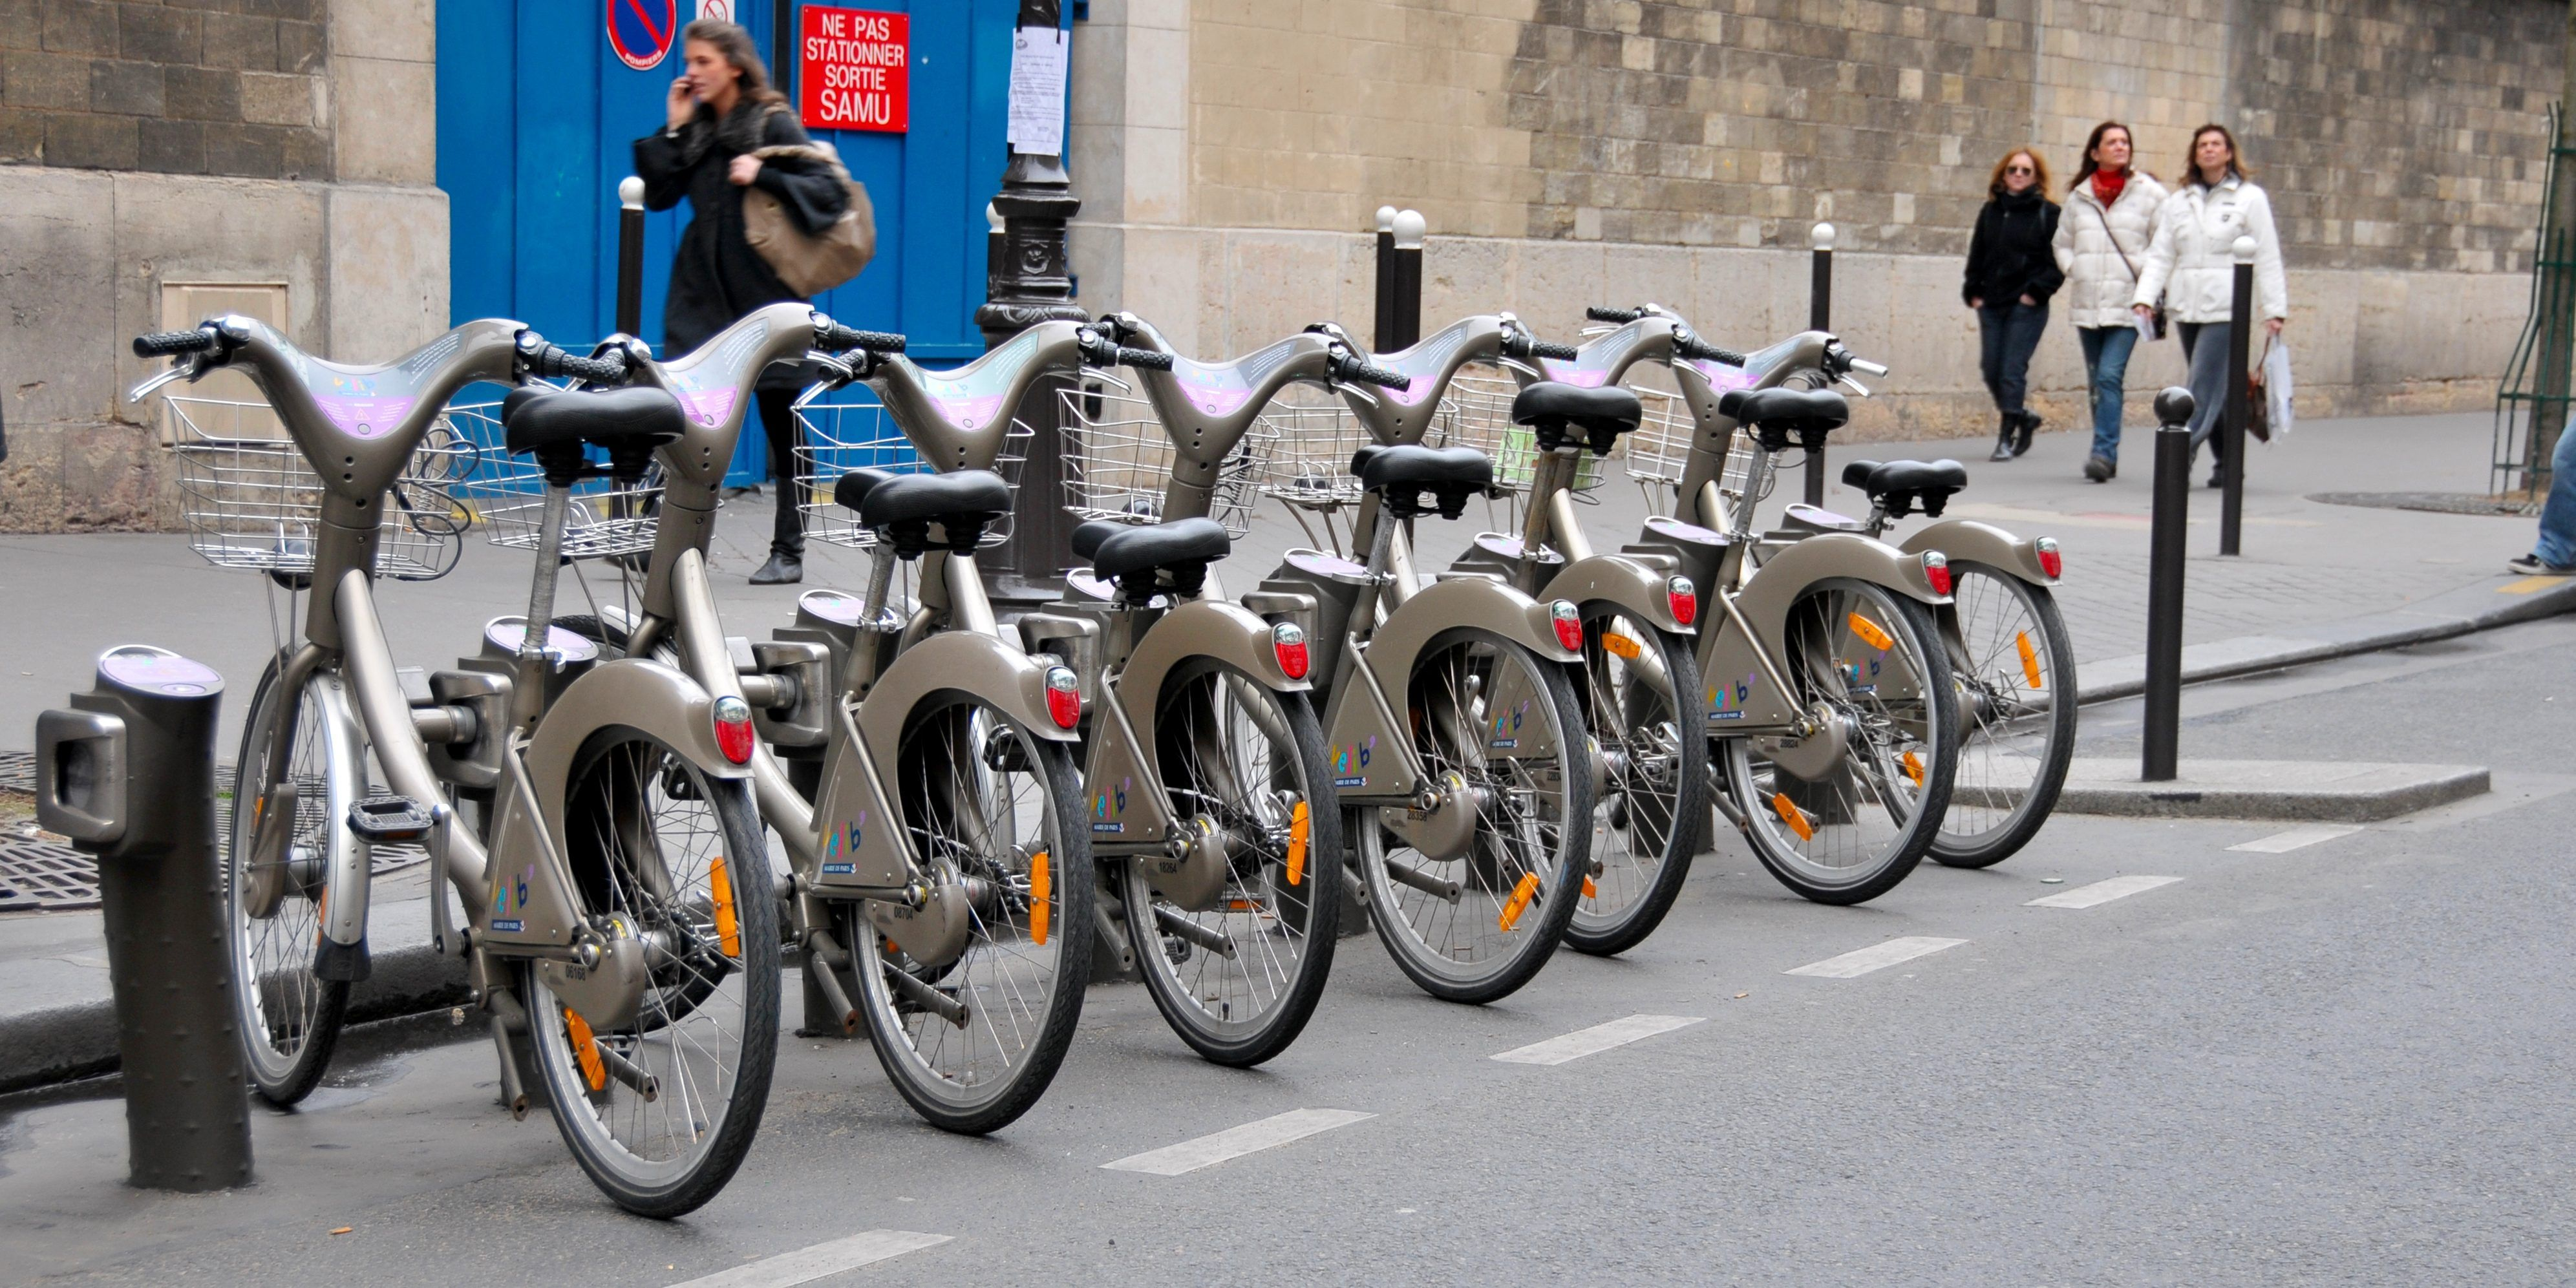 Veligo Set To Rollout In Paris As World S Largest Electric Bicycle